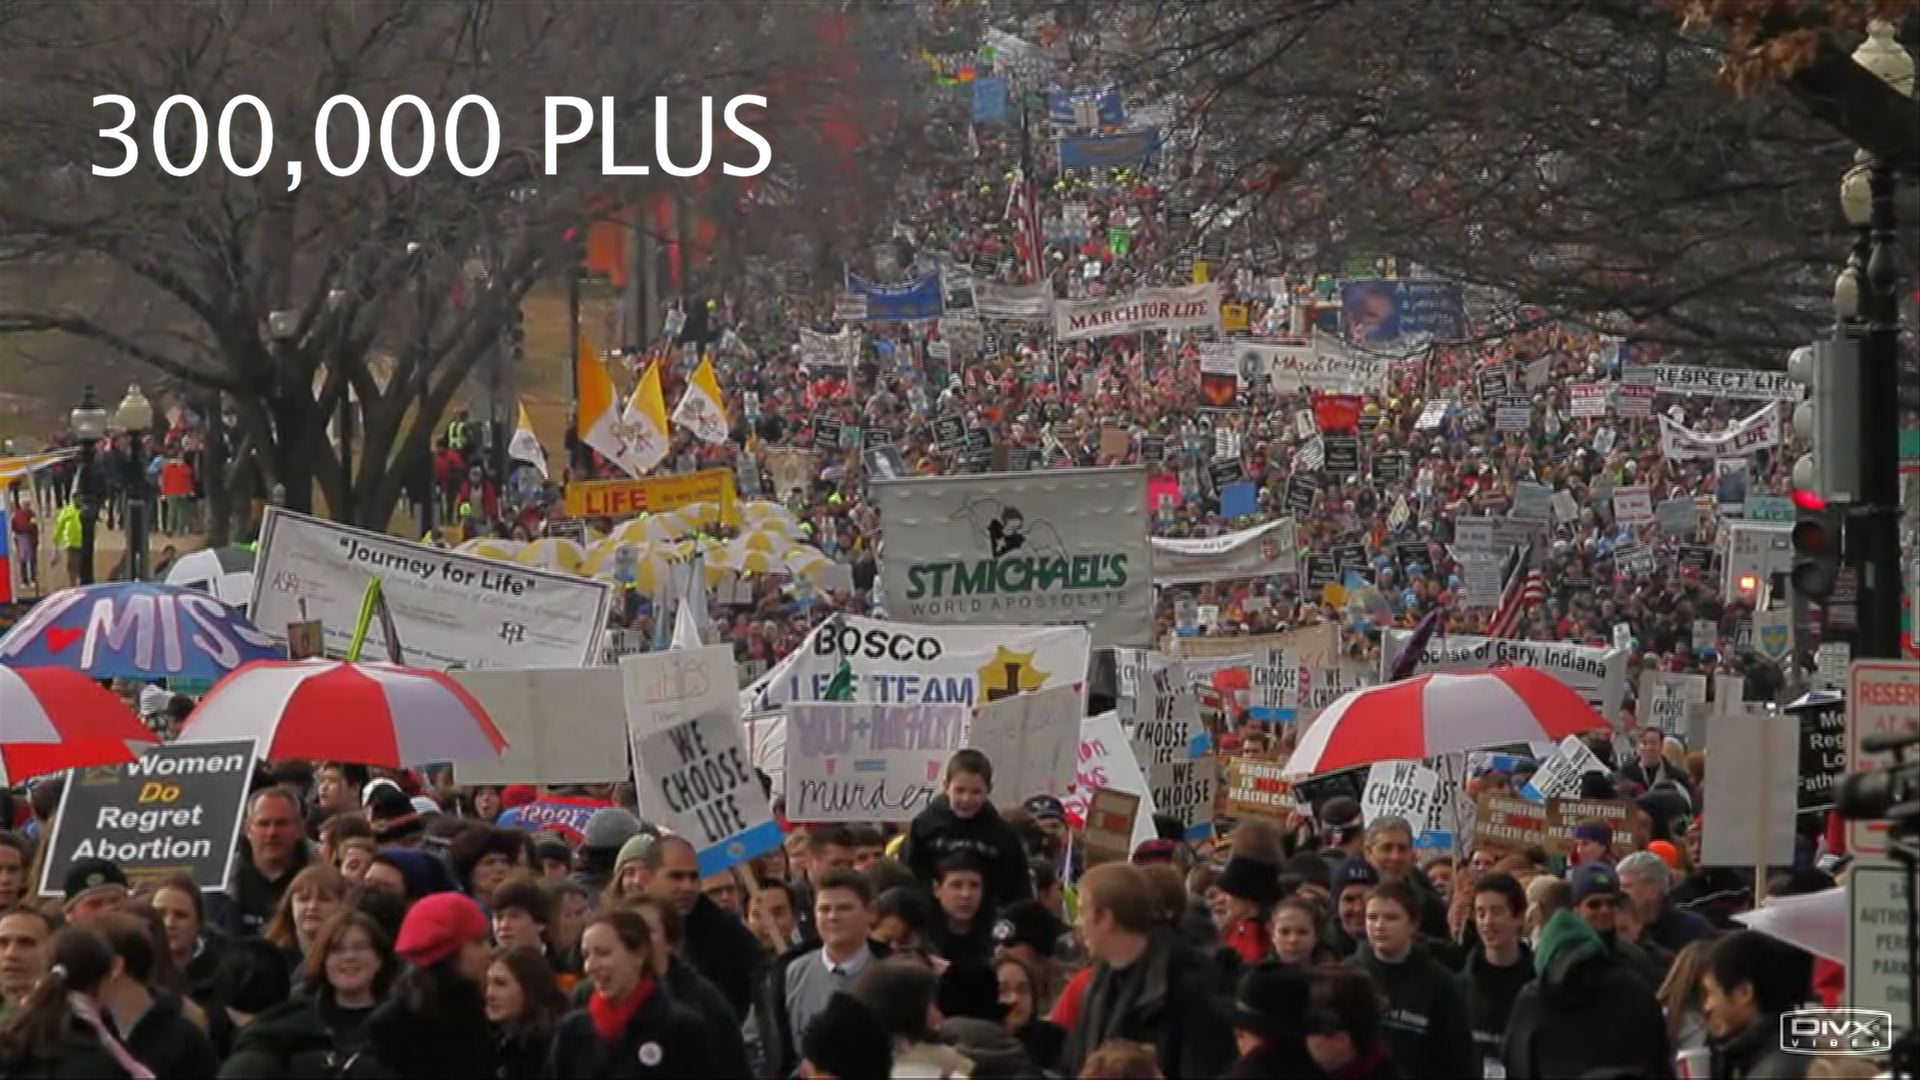 Video – Miscellanea #50: 300,000 PLUS MARCH FOR LIFE 2010